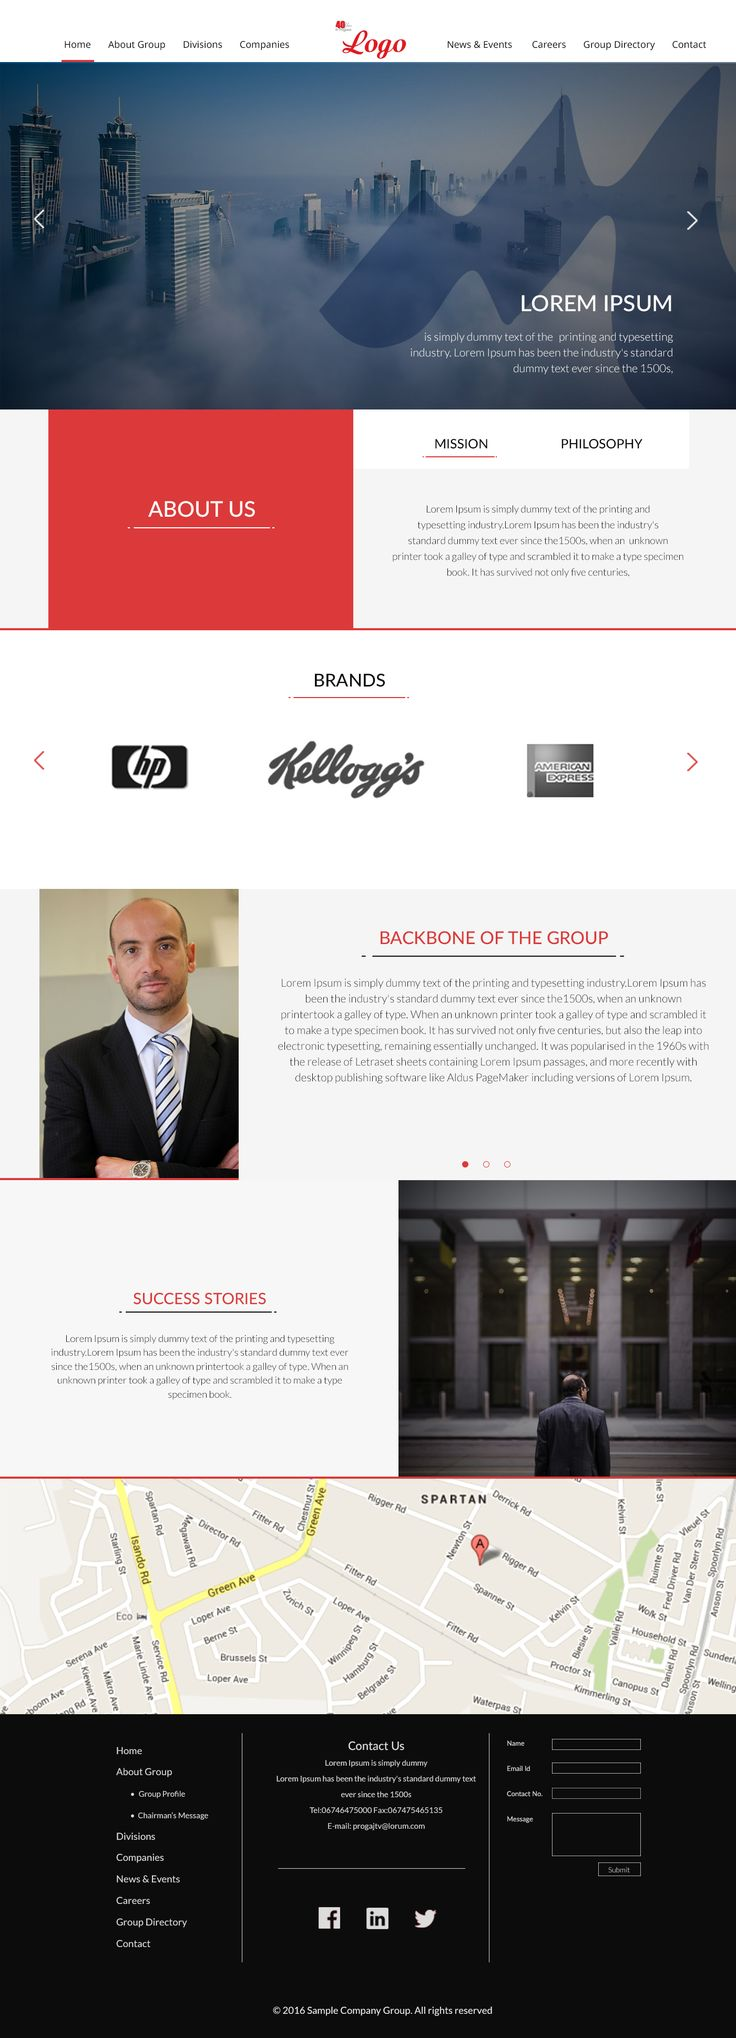 Website Template for a Corporate Company.